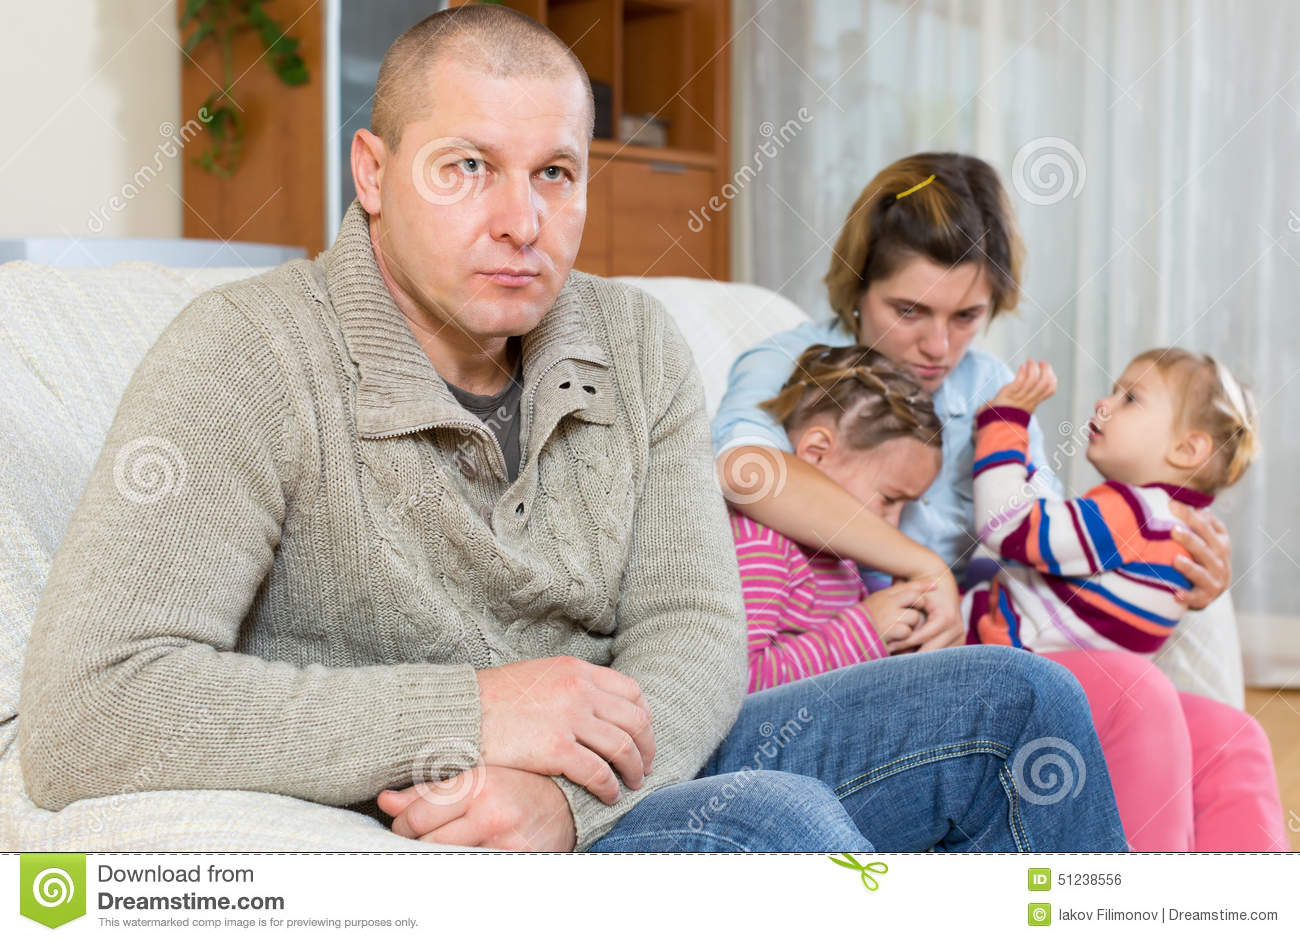 Cheating husband stock photo  Image of fighting, children